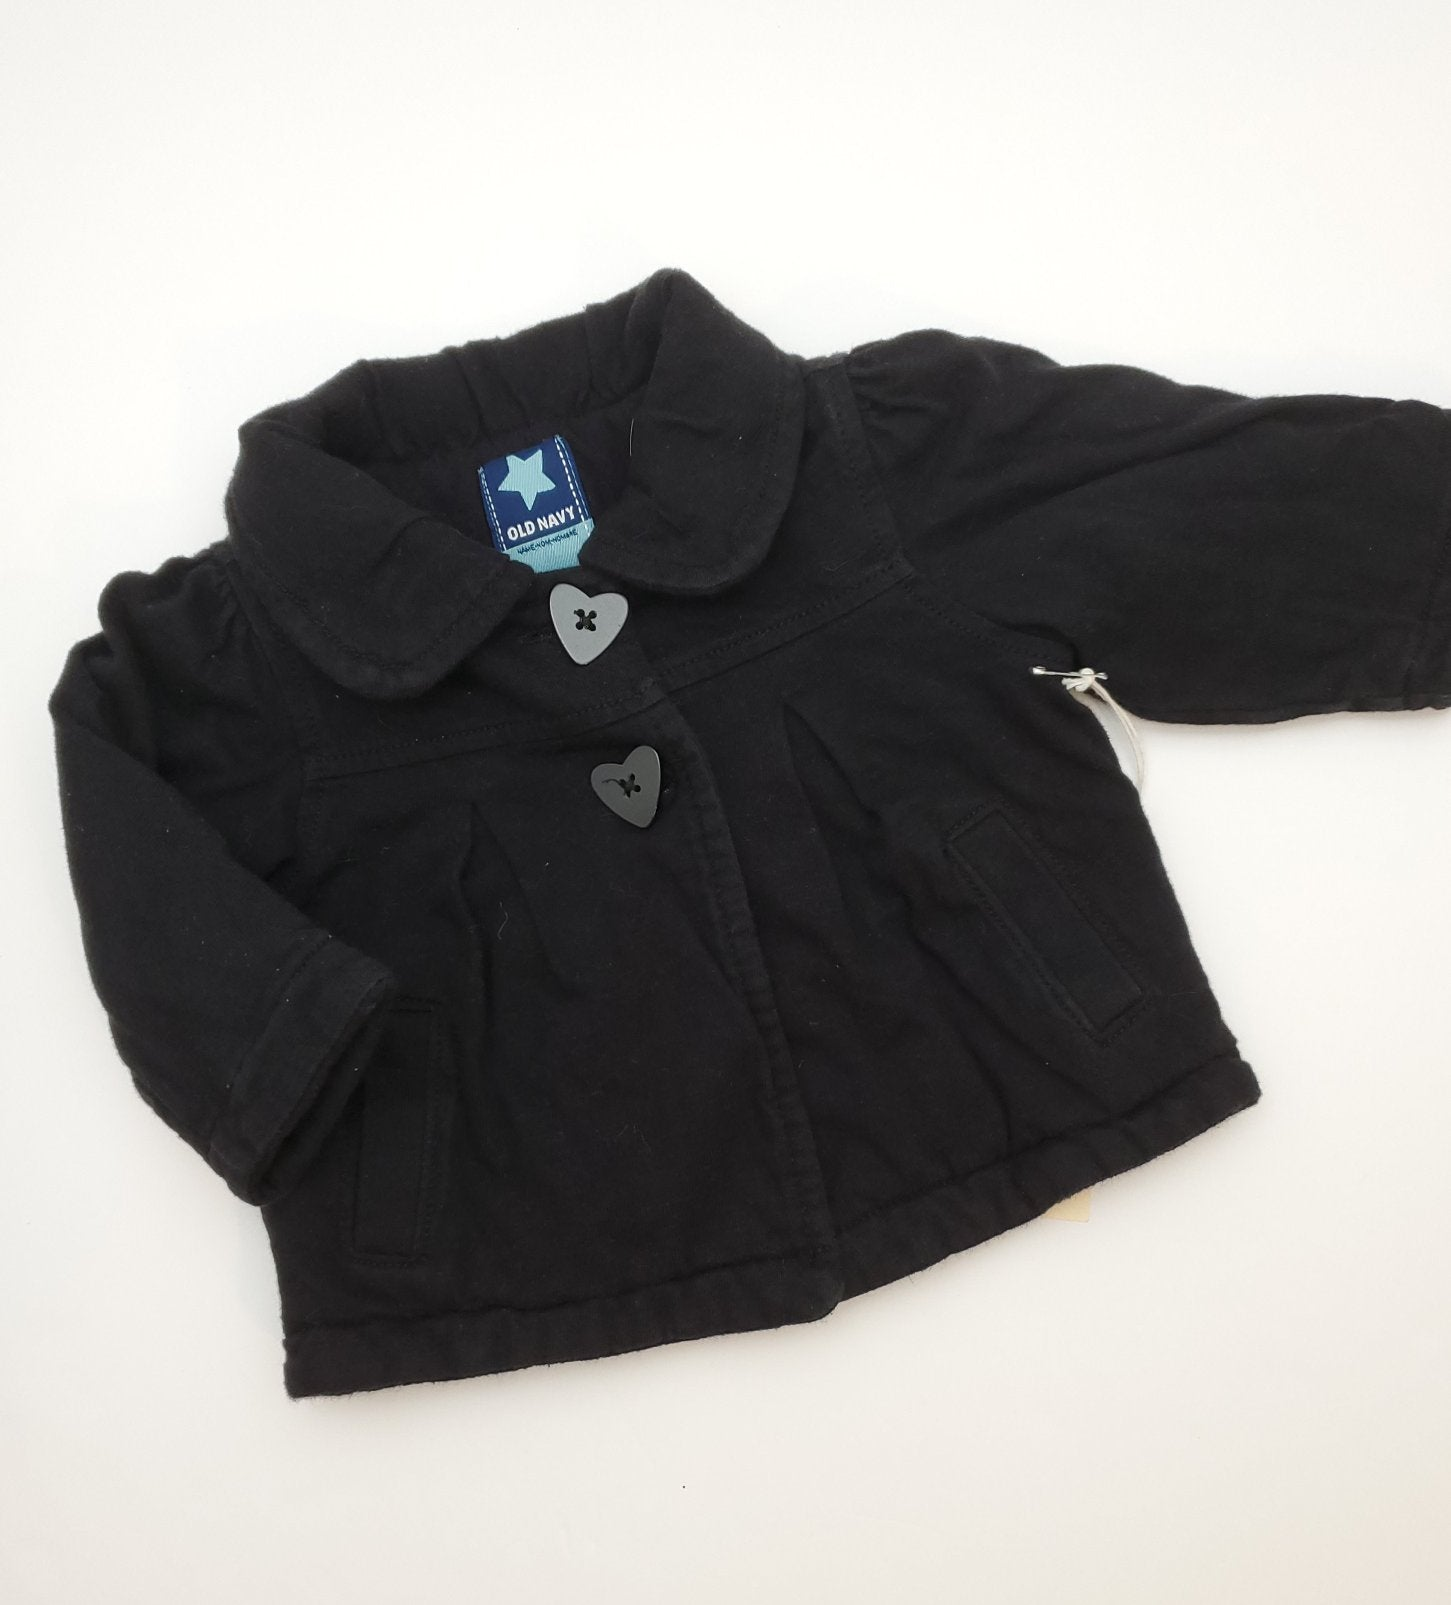 Resale 3-6 m Old Navy Black Jacket & 3 m Carters Footed Tights